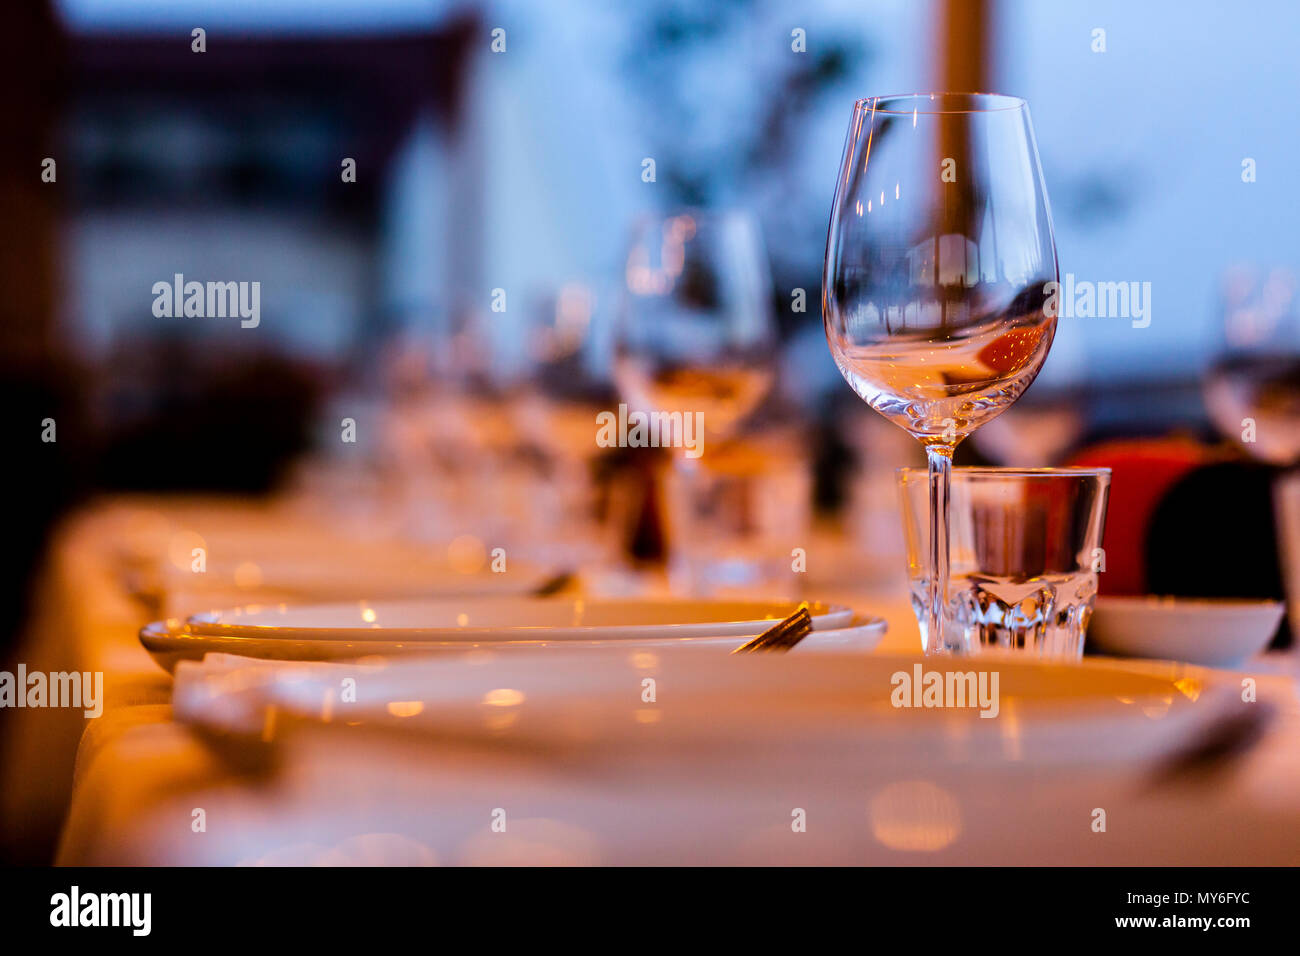 Luxury table settings for fine dining with and glassware, beautiful blurred  background. For events, weddings. - Stock Image